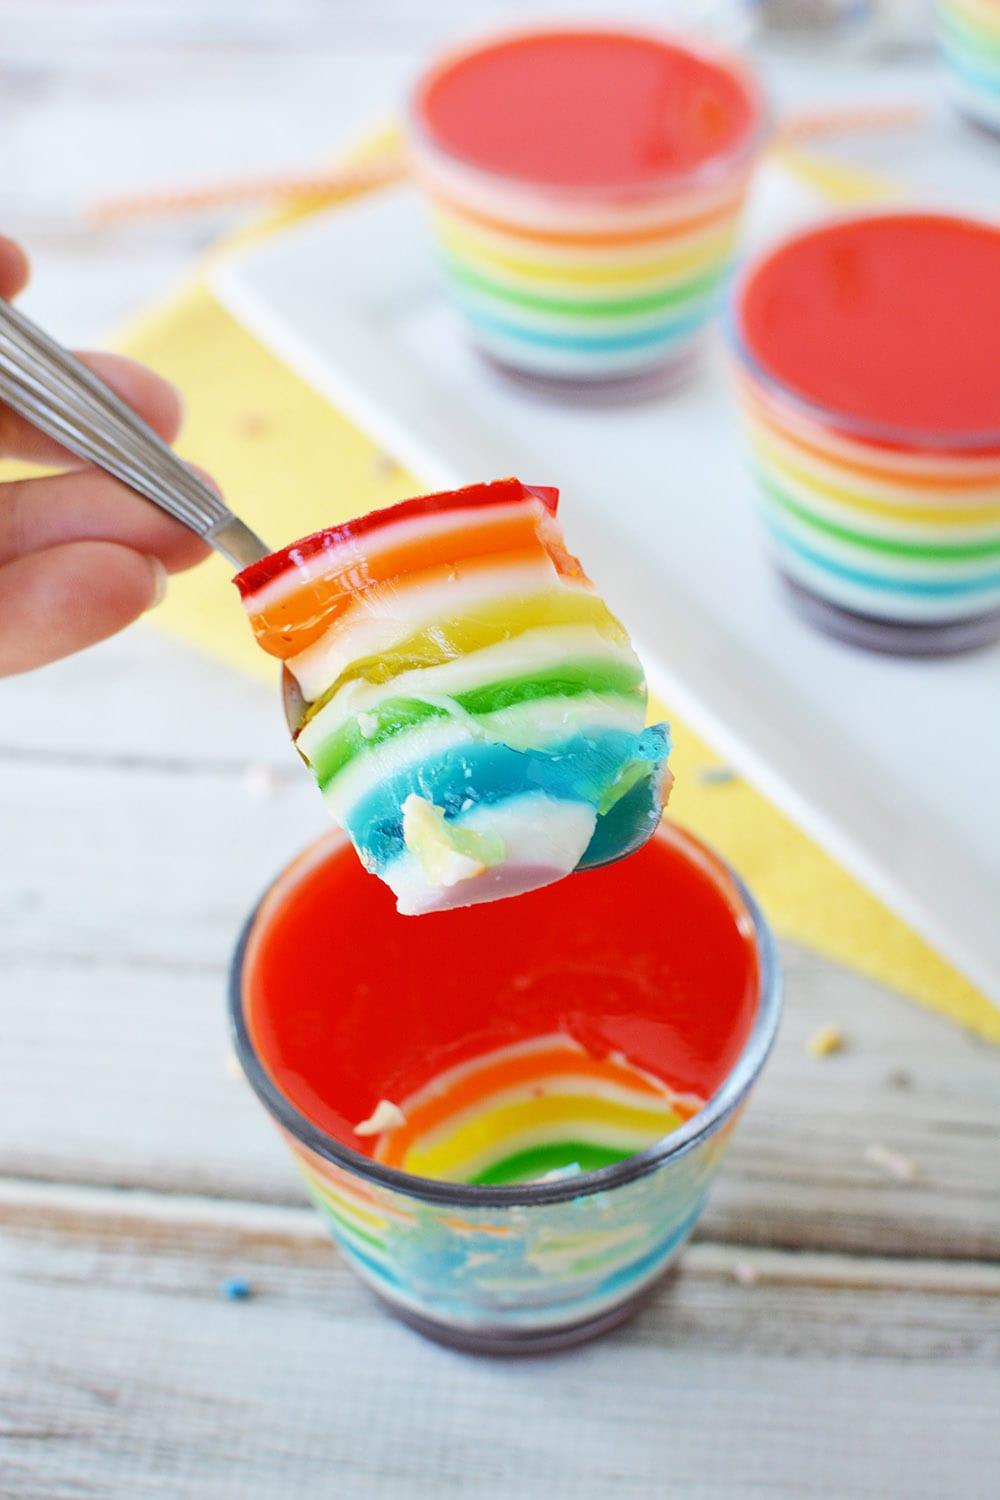 Spoonful of rainbow layered Jell-o